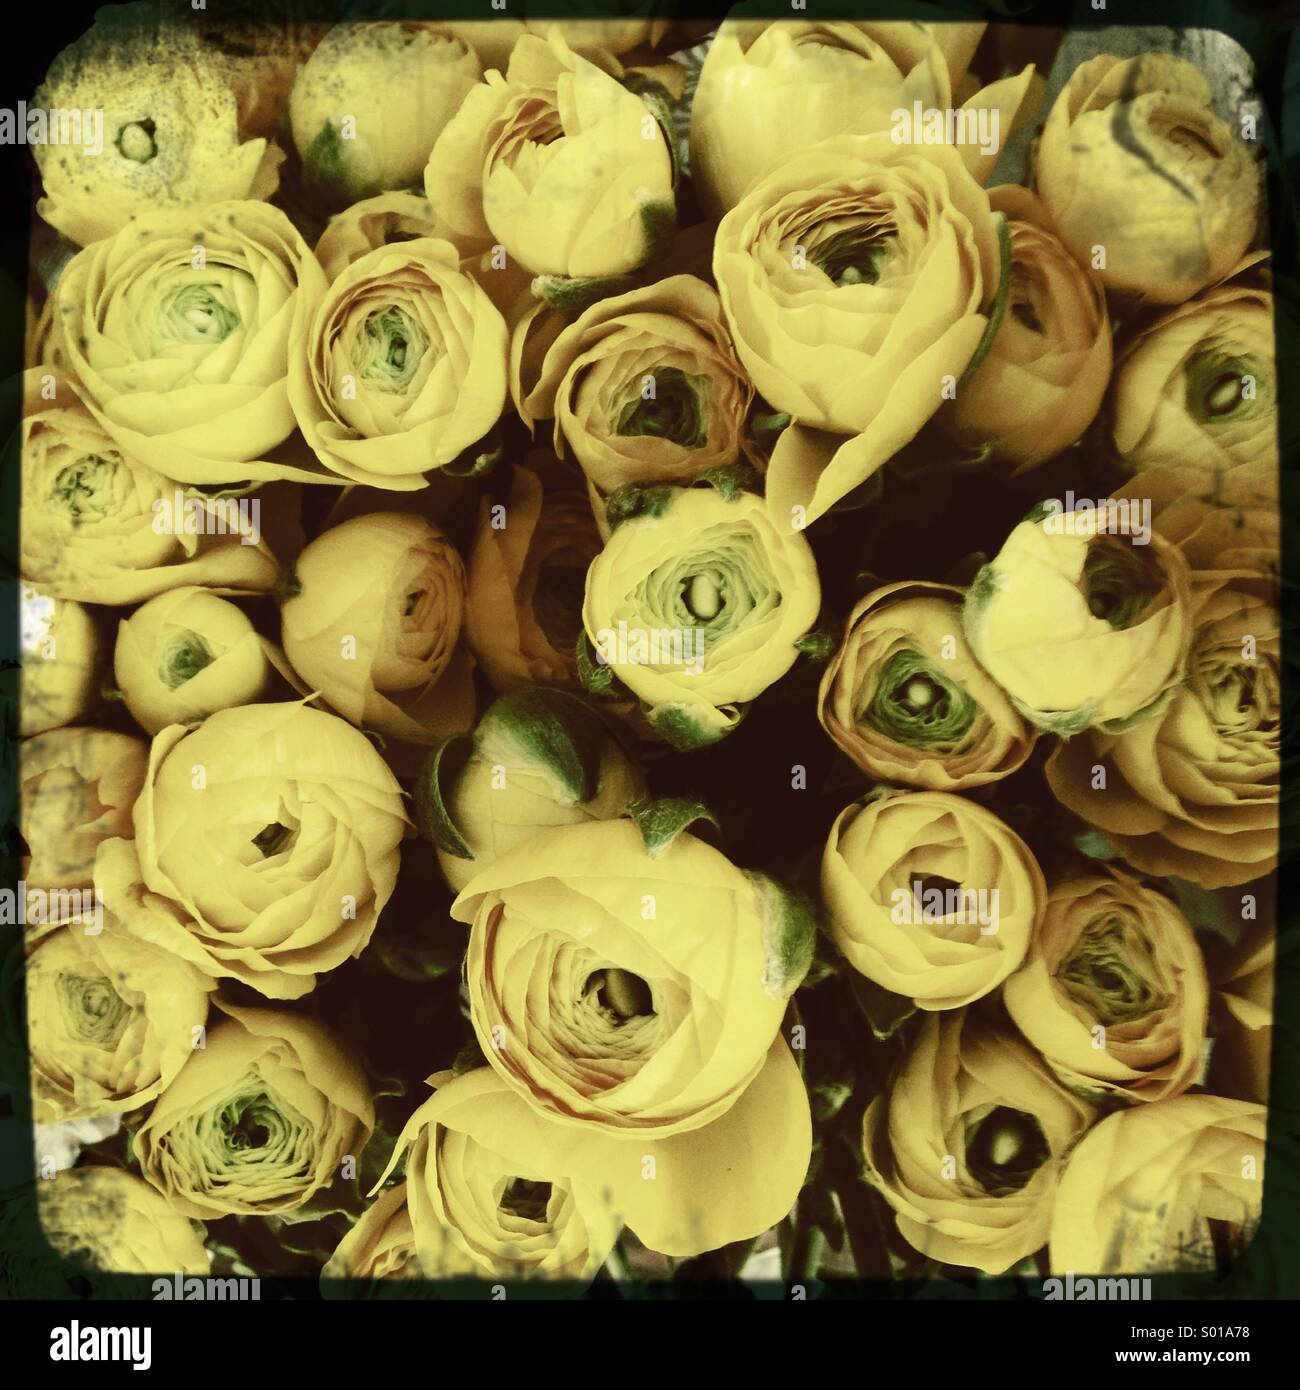 Yellow roses bouquet - Stock Image